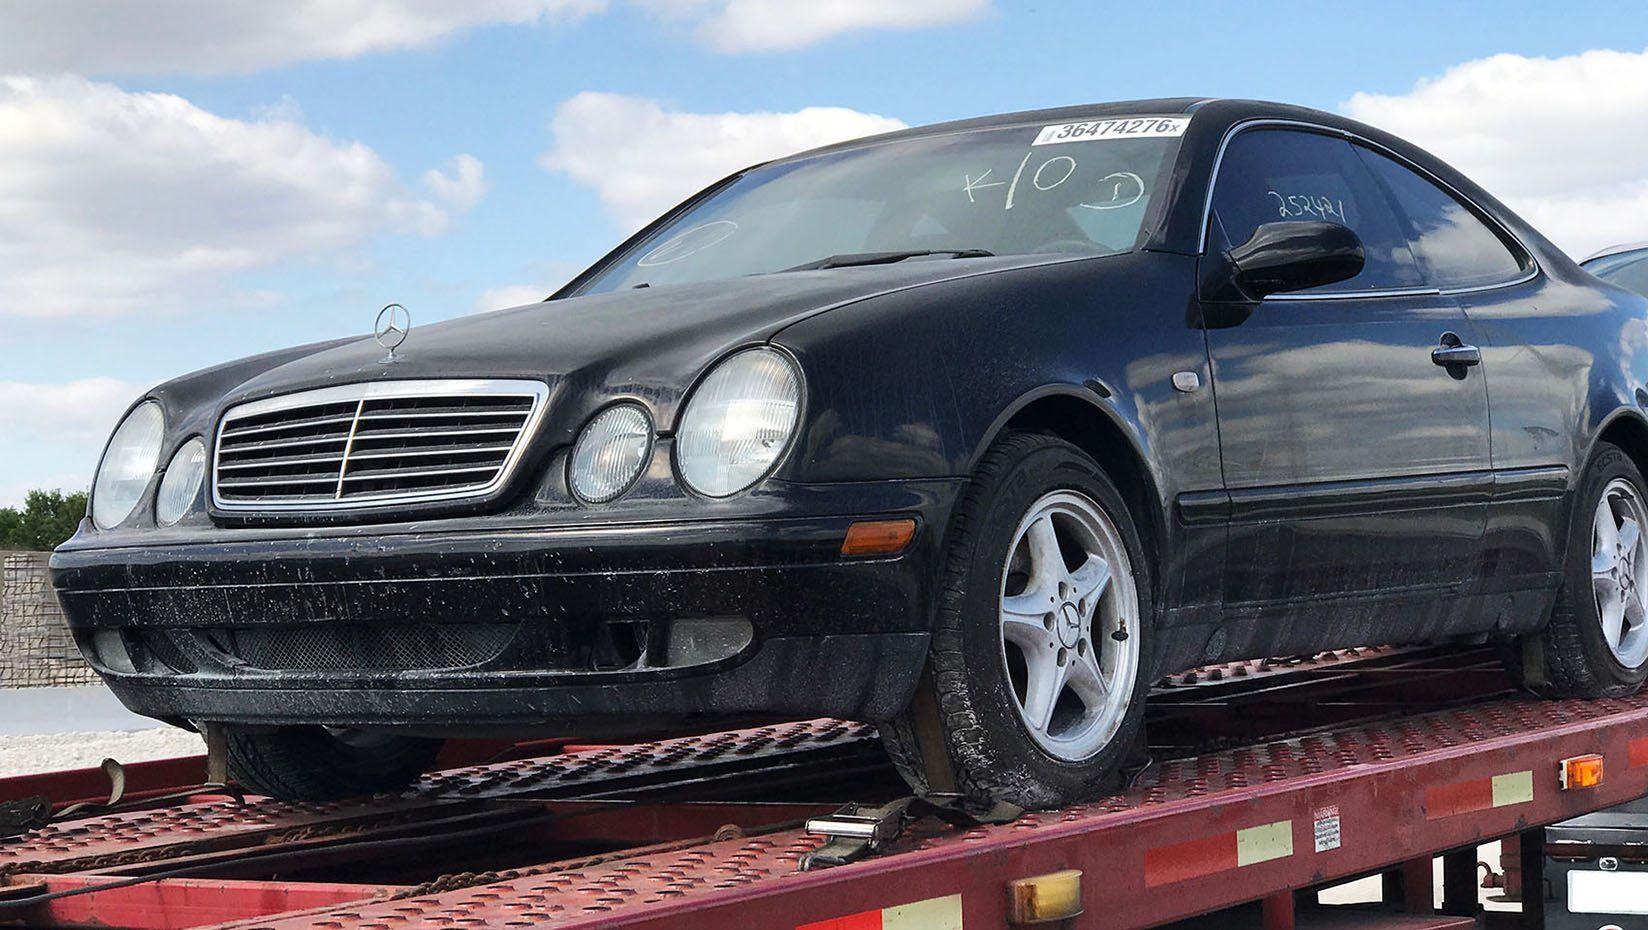 Auction Car Transport Service – IAA / Copart / Manheim / Adesa / Mecum